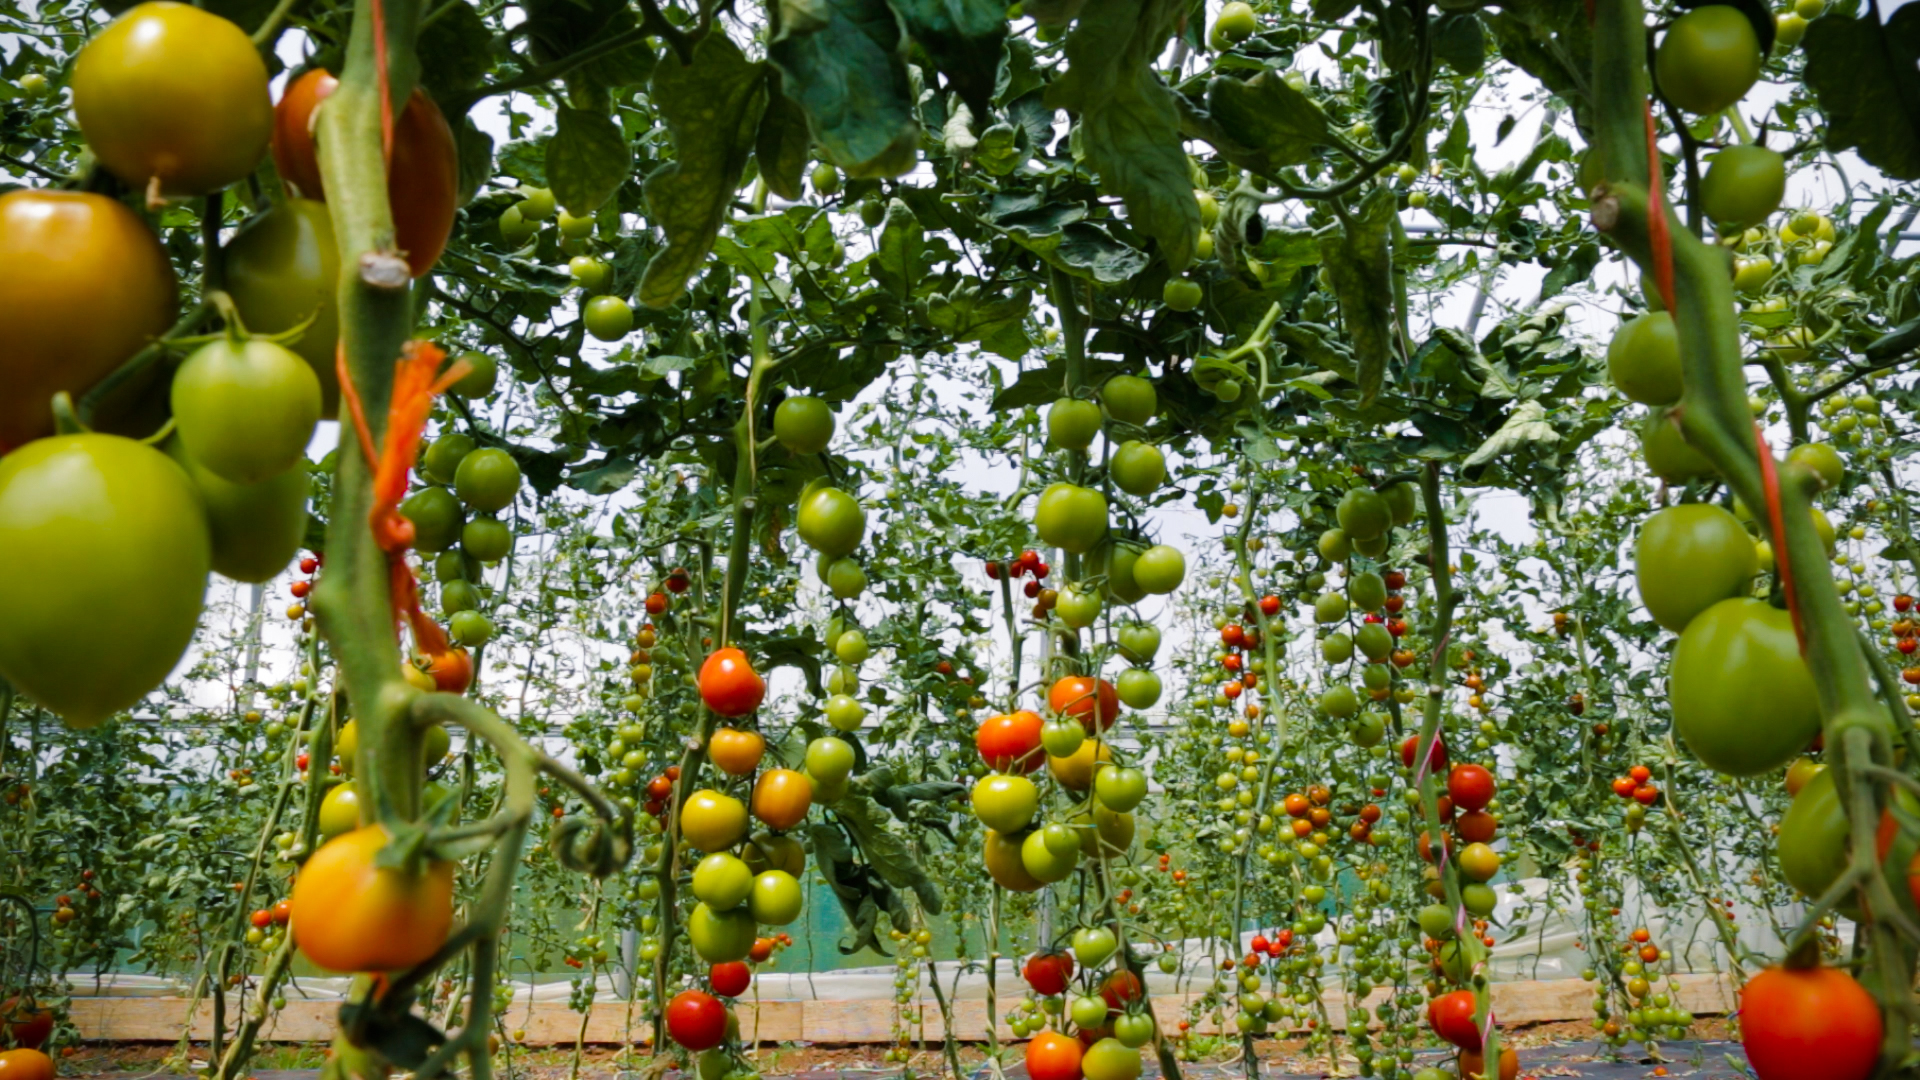 Green and Red Tomatoes growing on vines